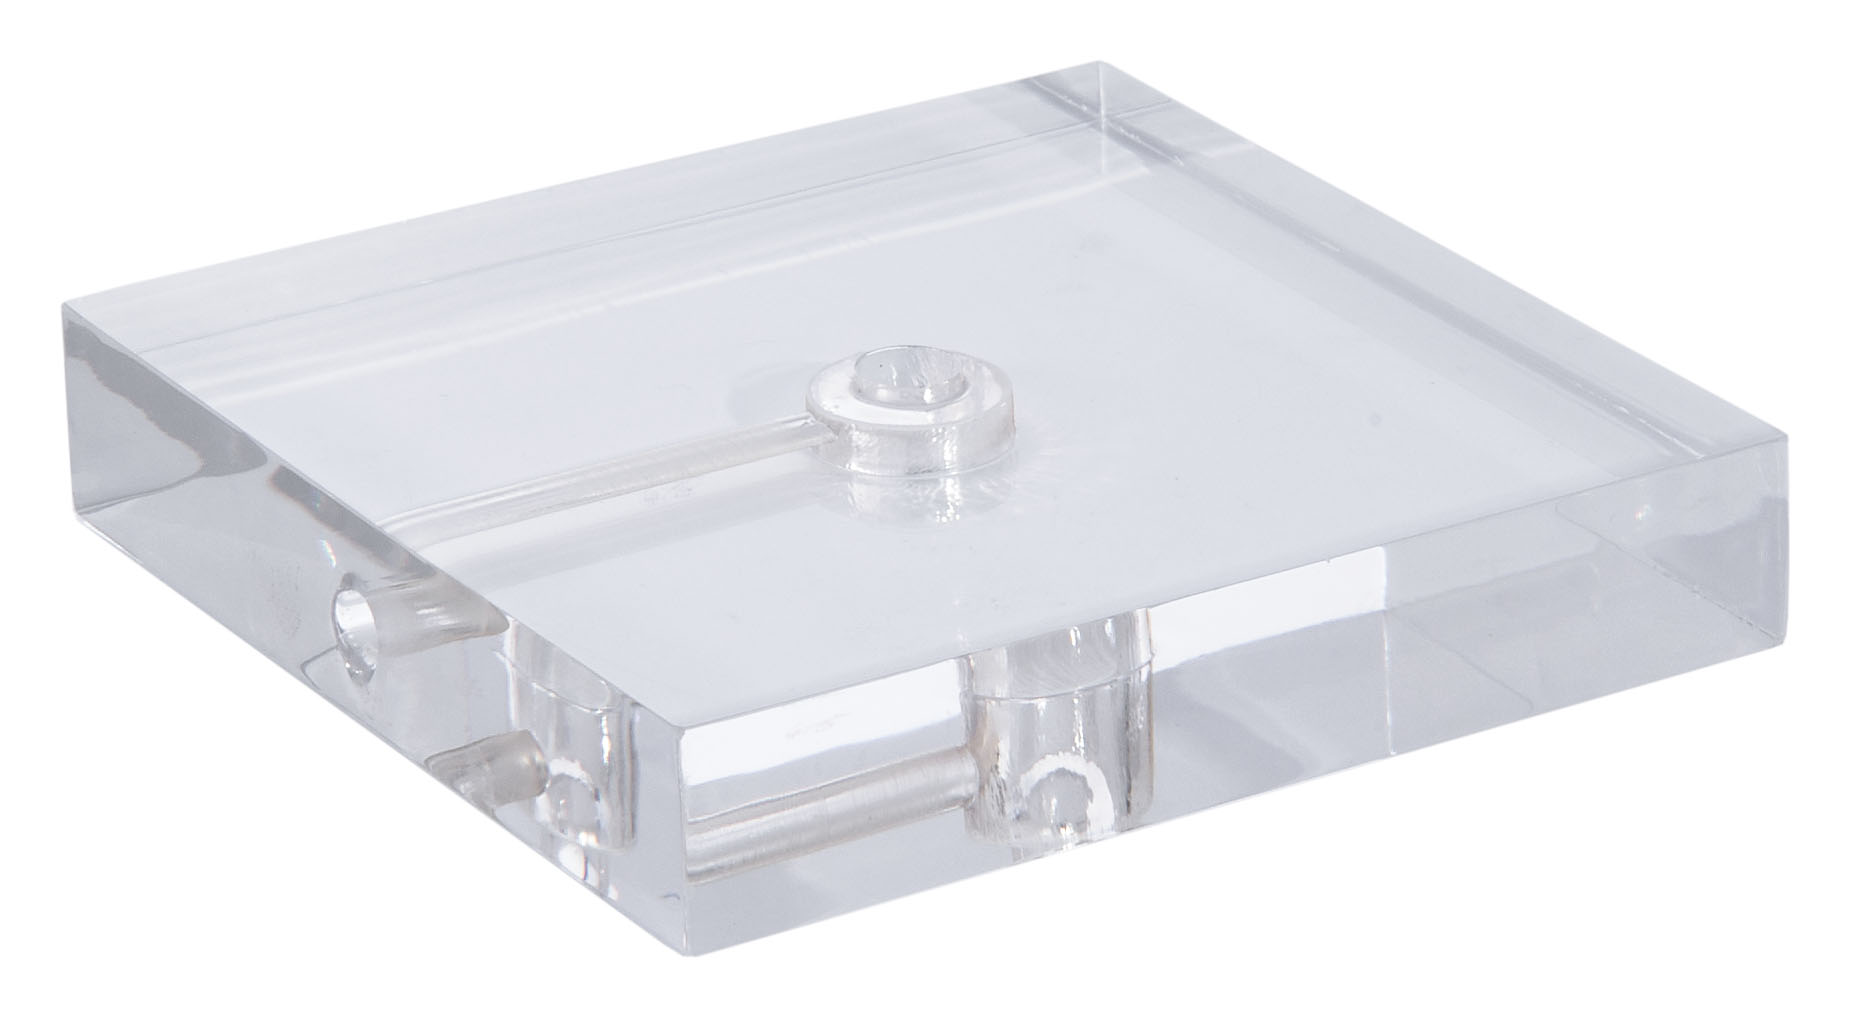 Clear Acrylic Square Lamp Bases W Wire Way 10287 B Amp P Lamp Supply